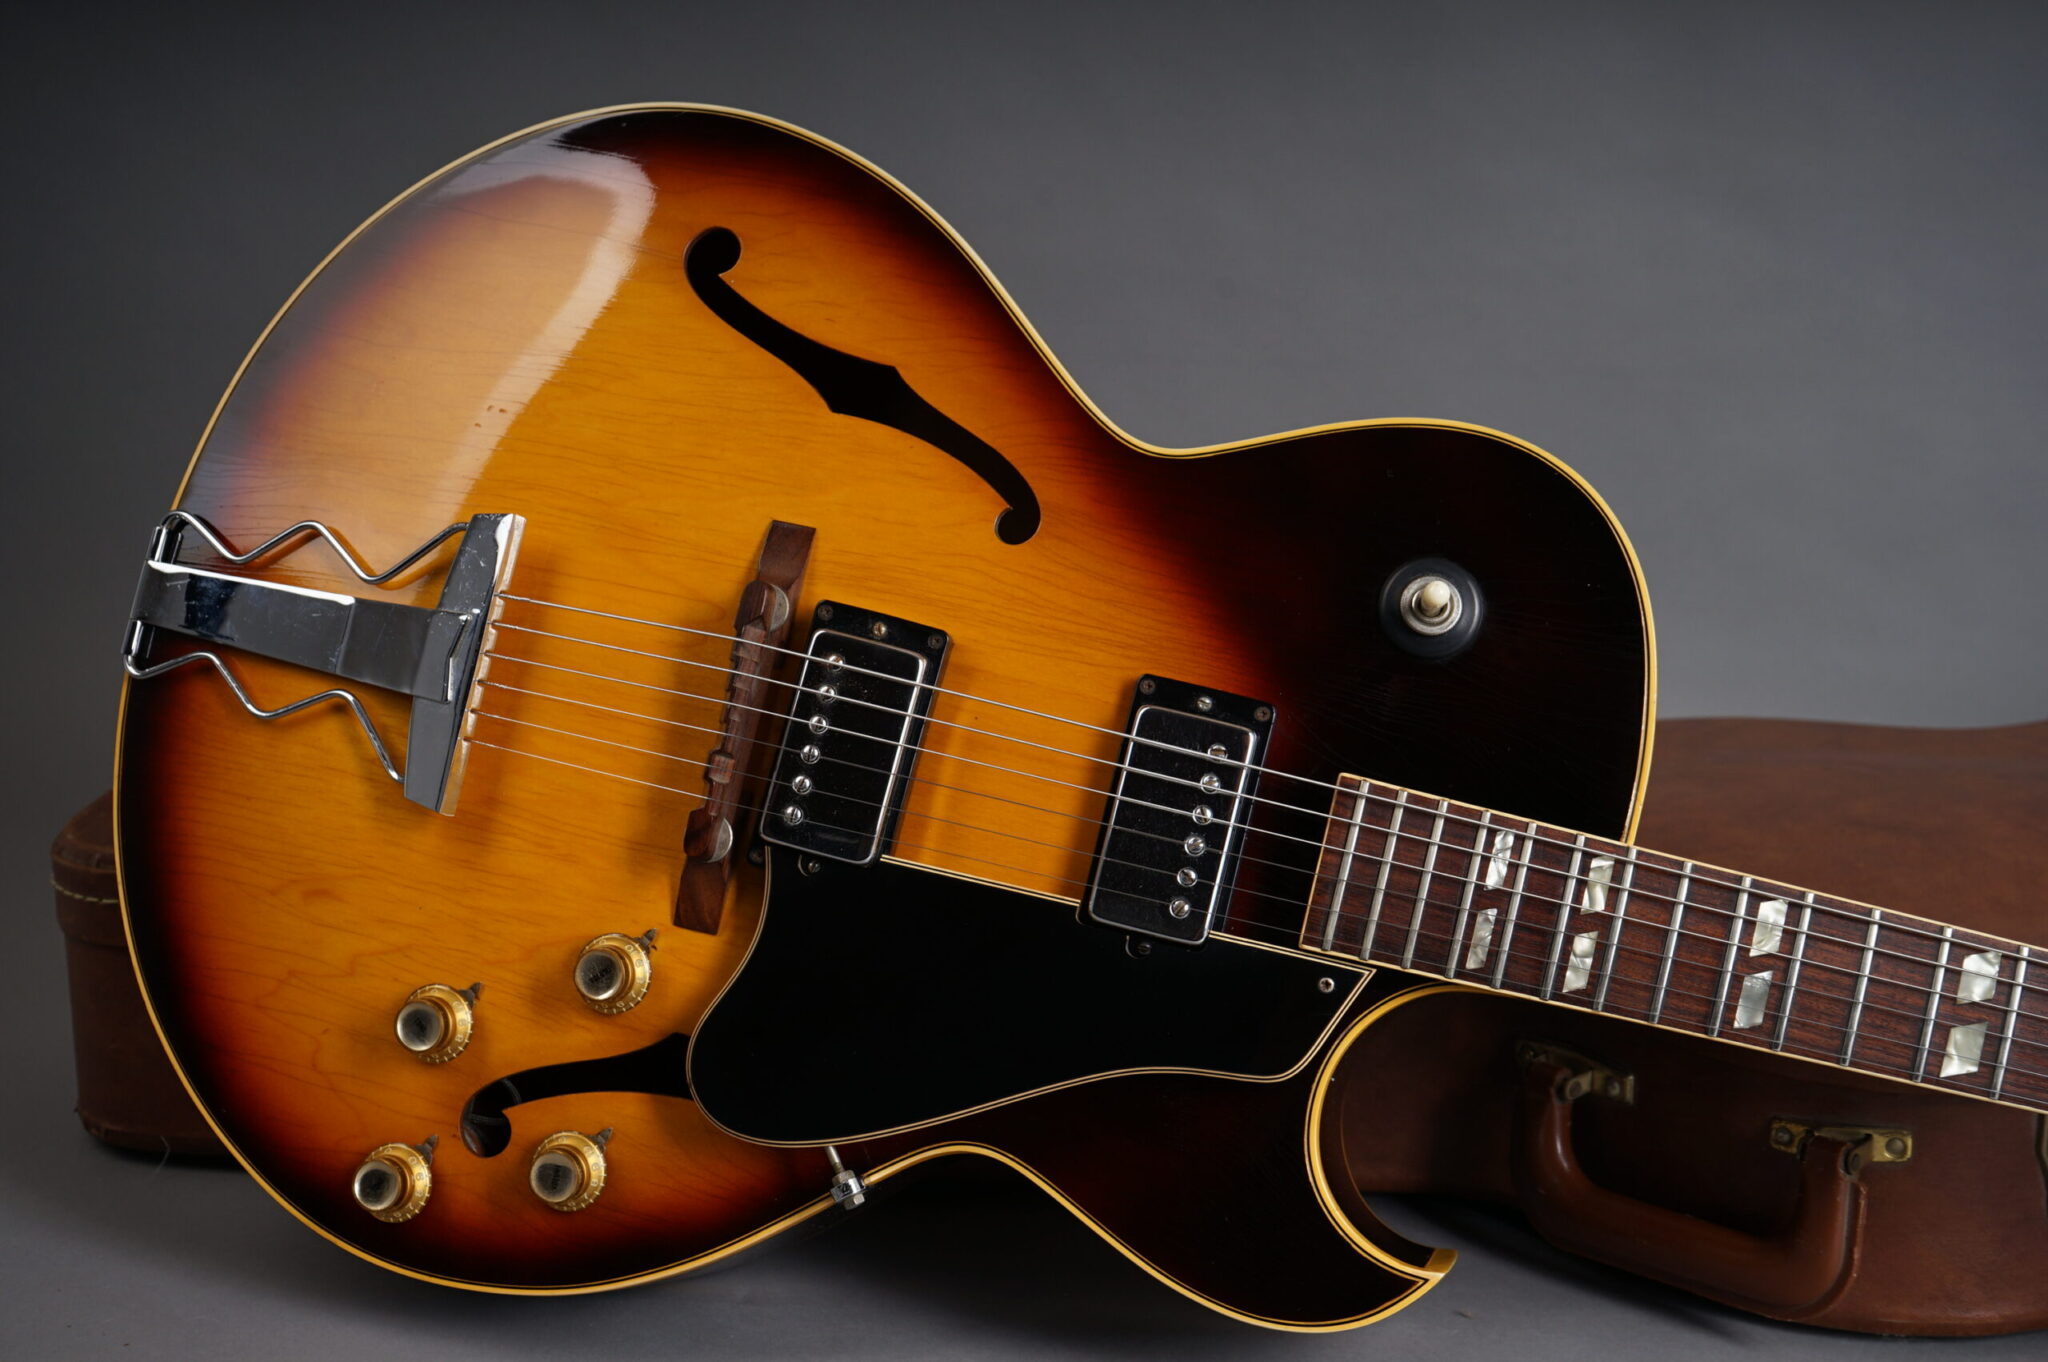 https://guitarpoint.de/app/uploads/products/1968-gibson-es-175d-sunburst/1968-Gibson-ES-175D-528779-8-scaled-2048x1362.jpg